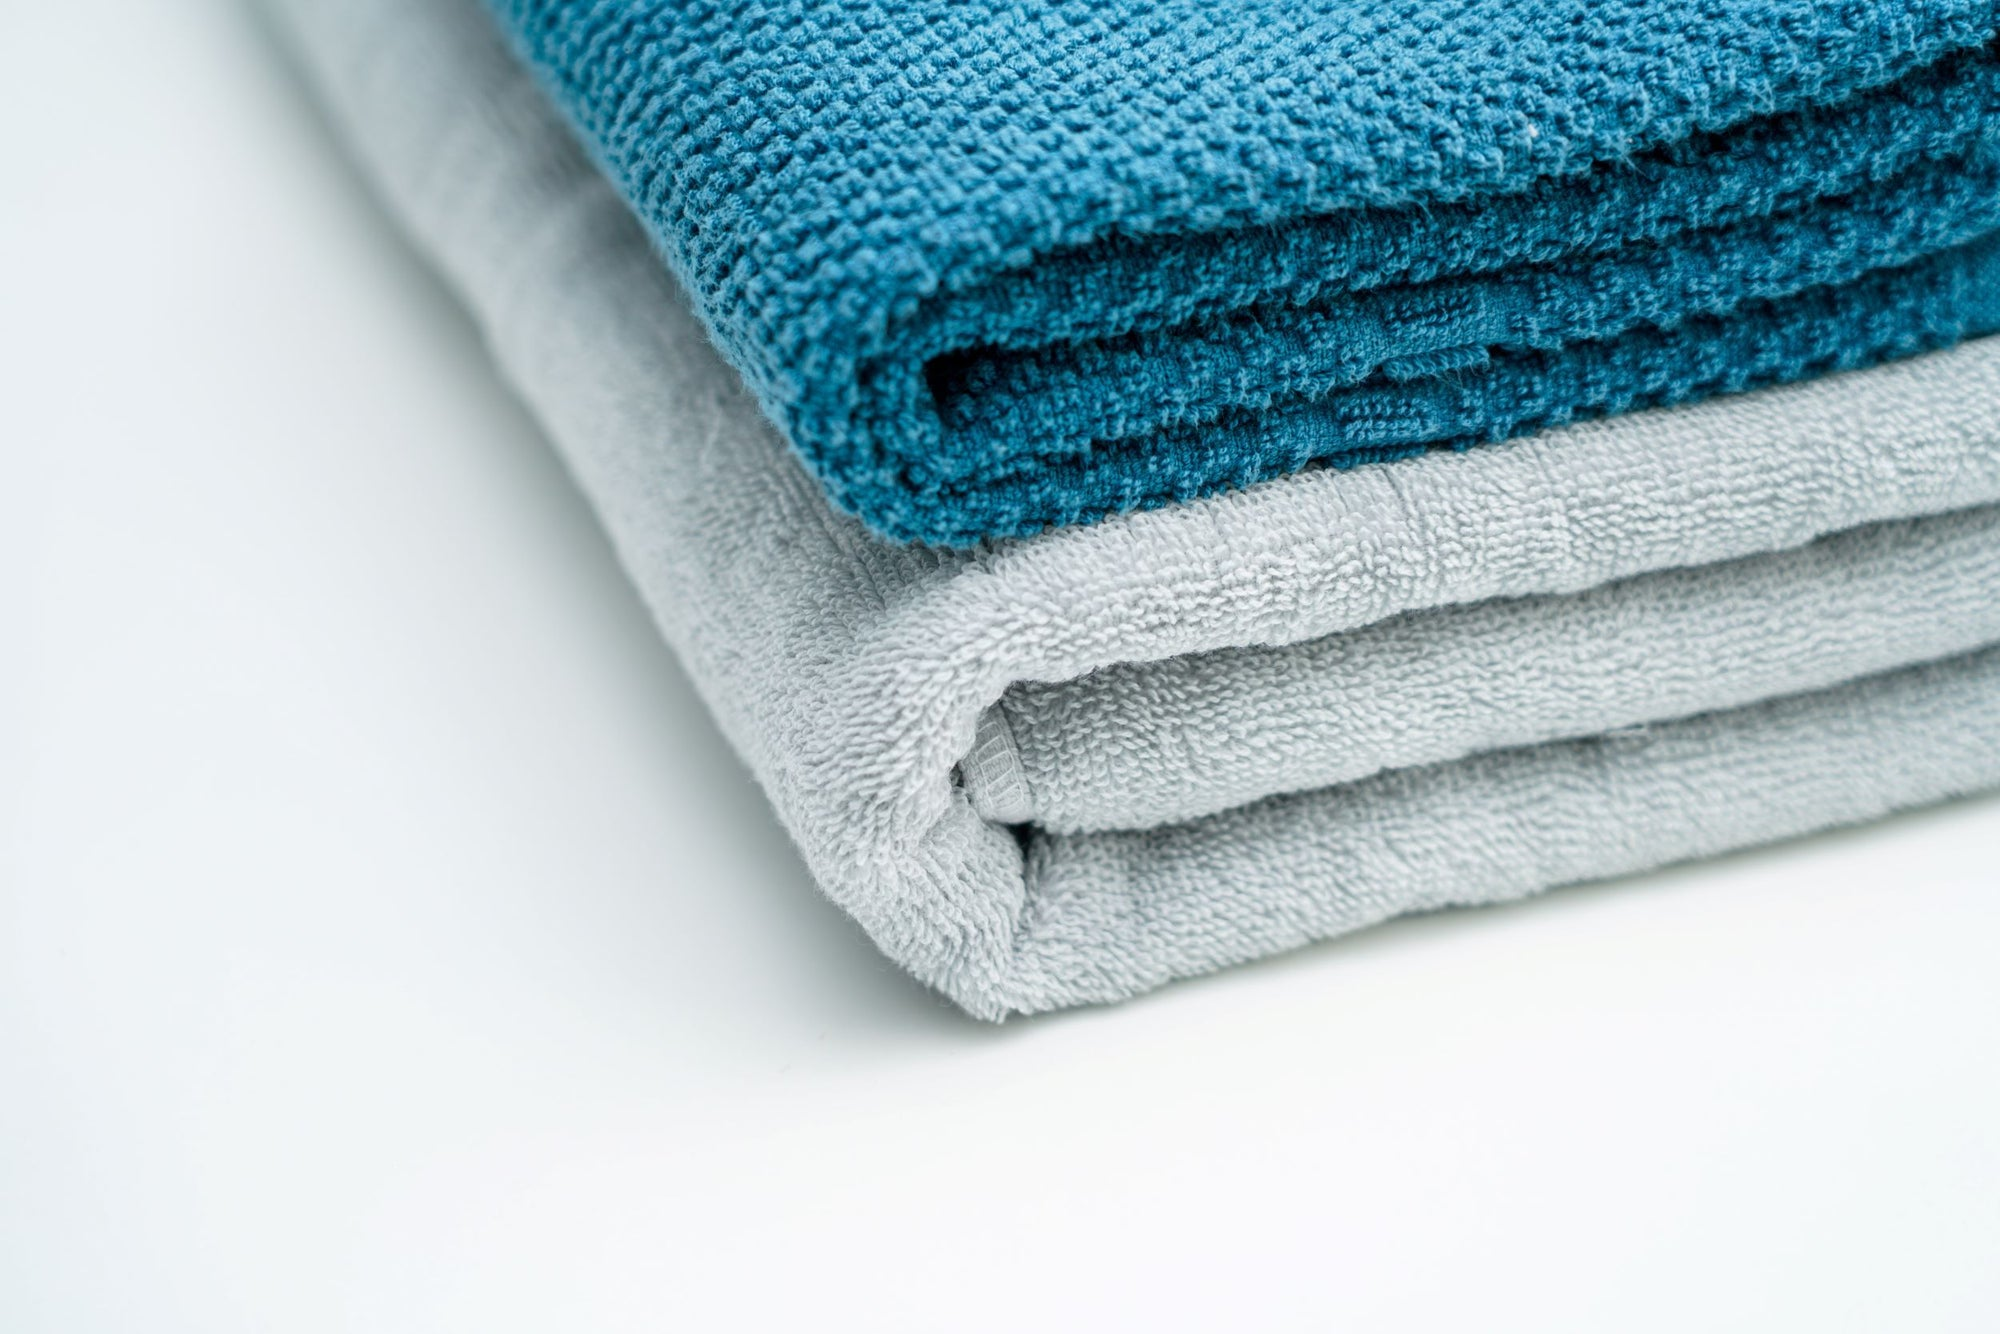 Folded Towels turquoise and grey color